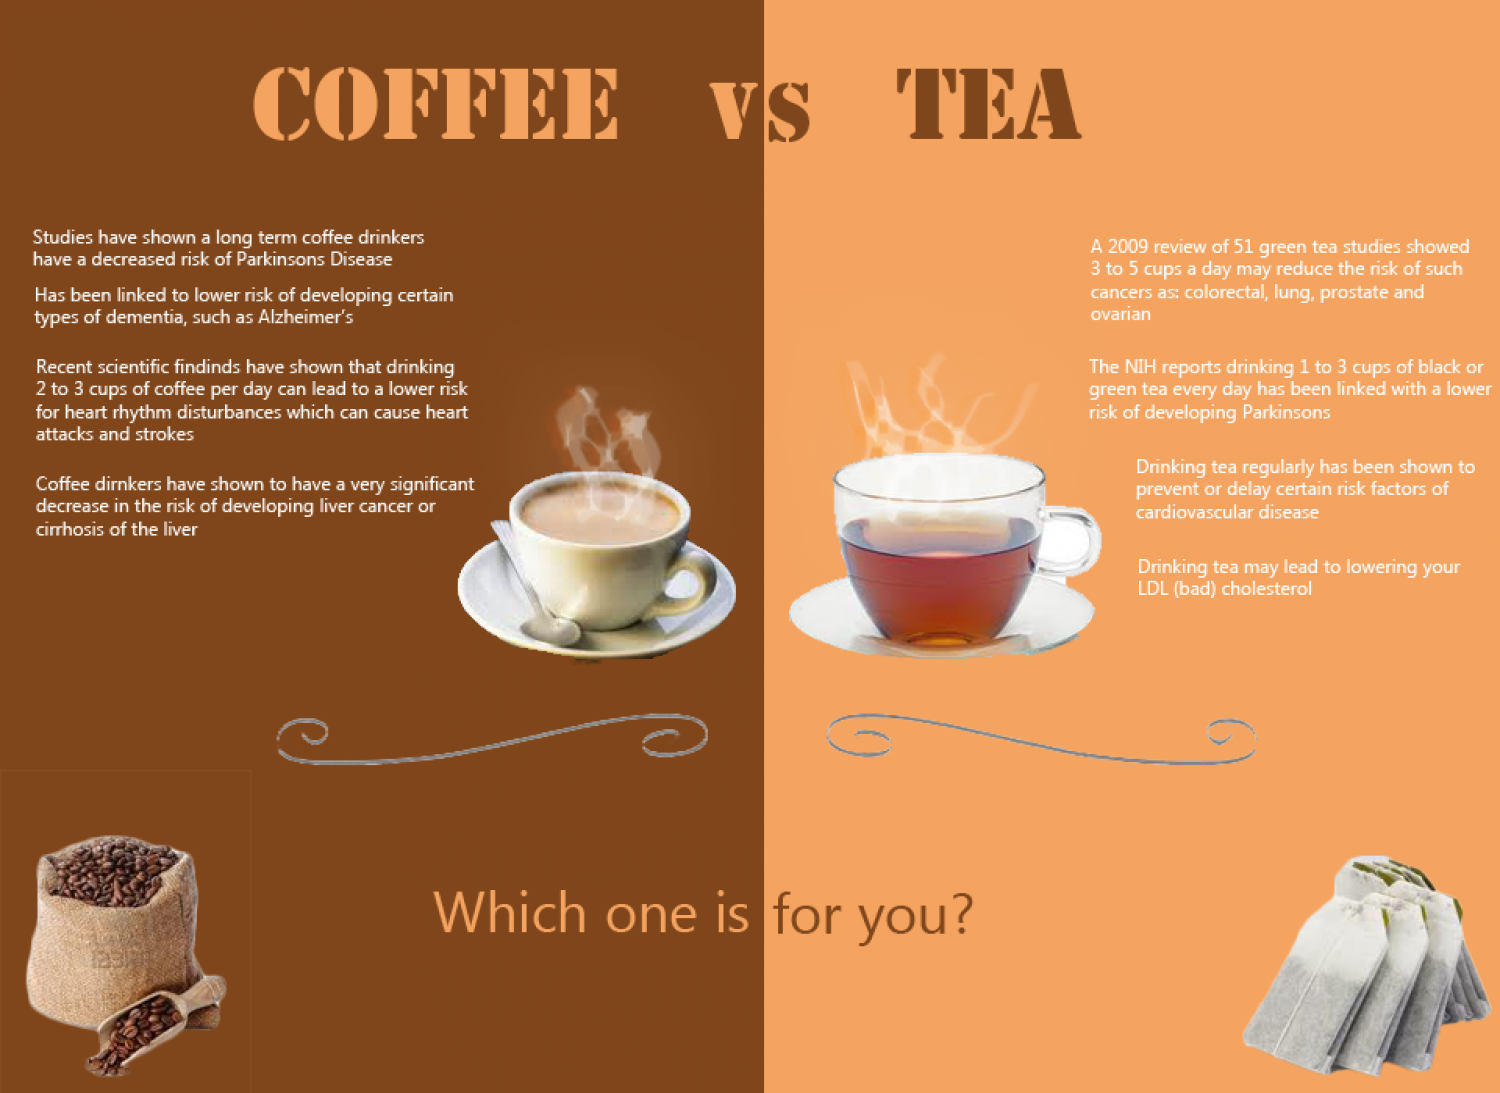 Coffee vs Tea Infographic